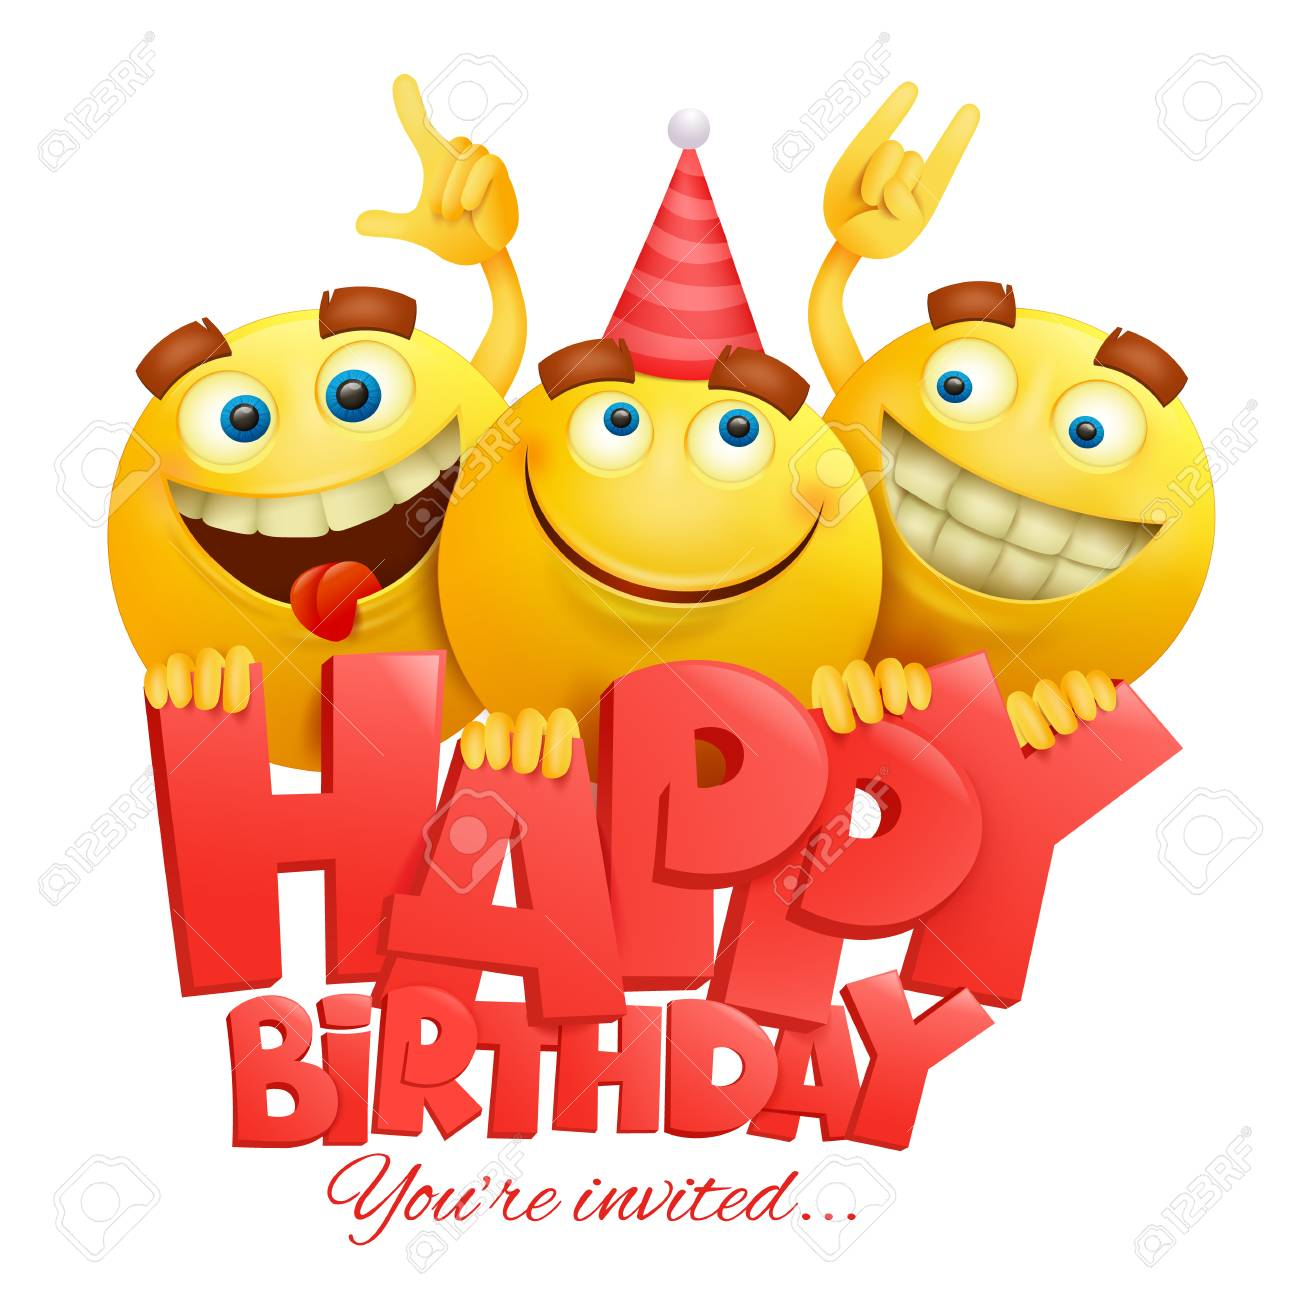 Smiley Yellow Faces Emoji Characters Happy Birthday Card Realistic